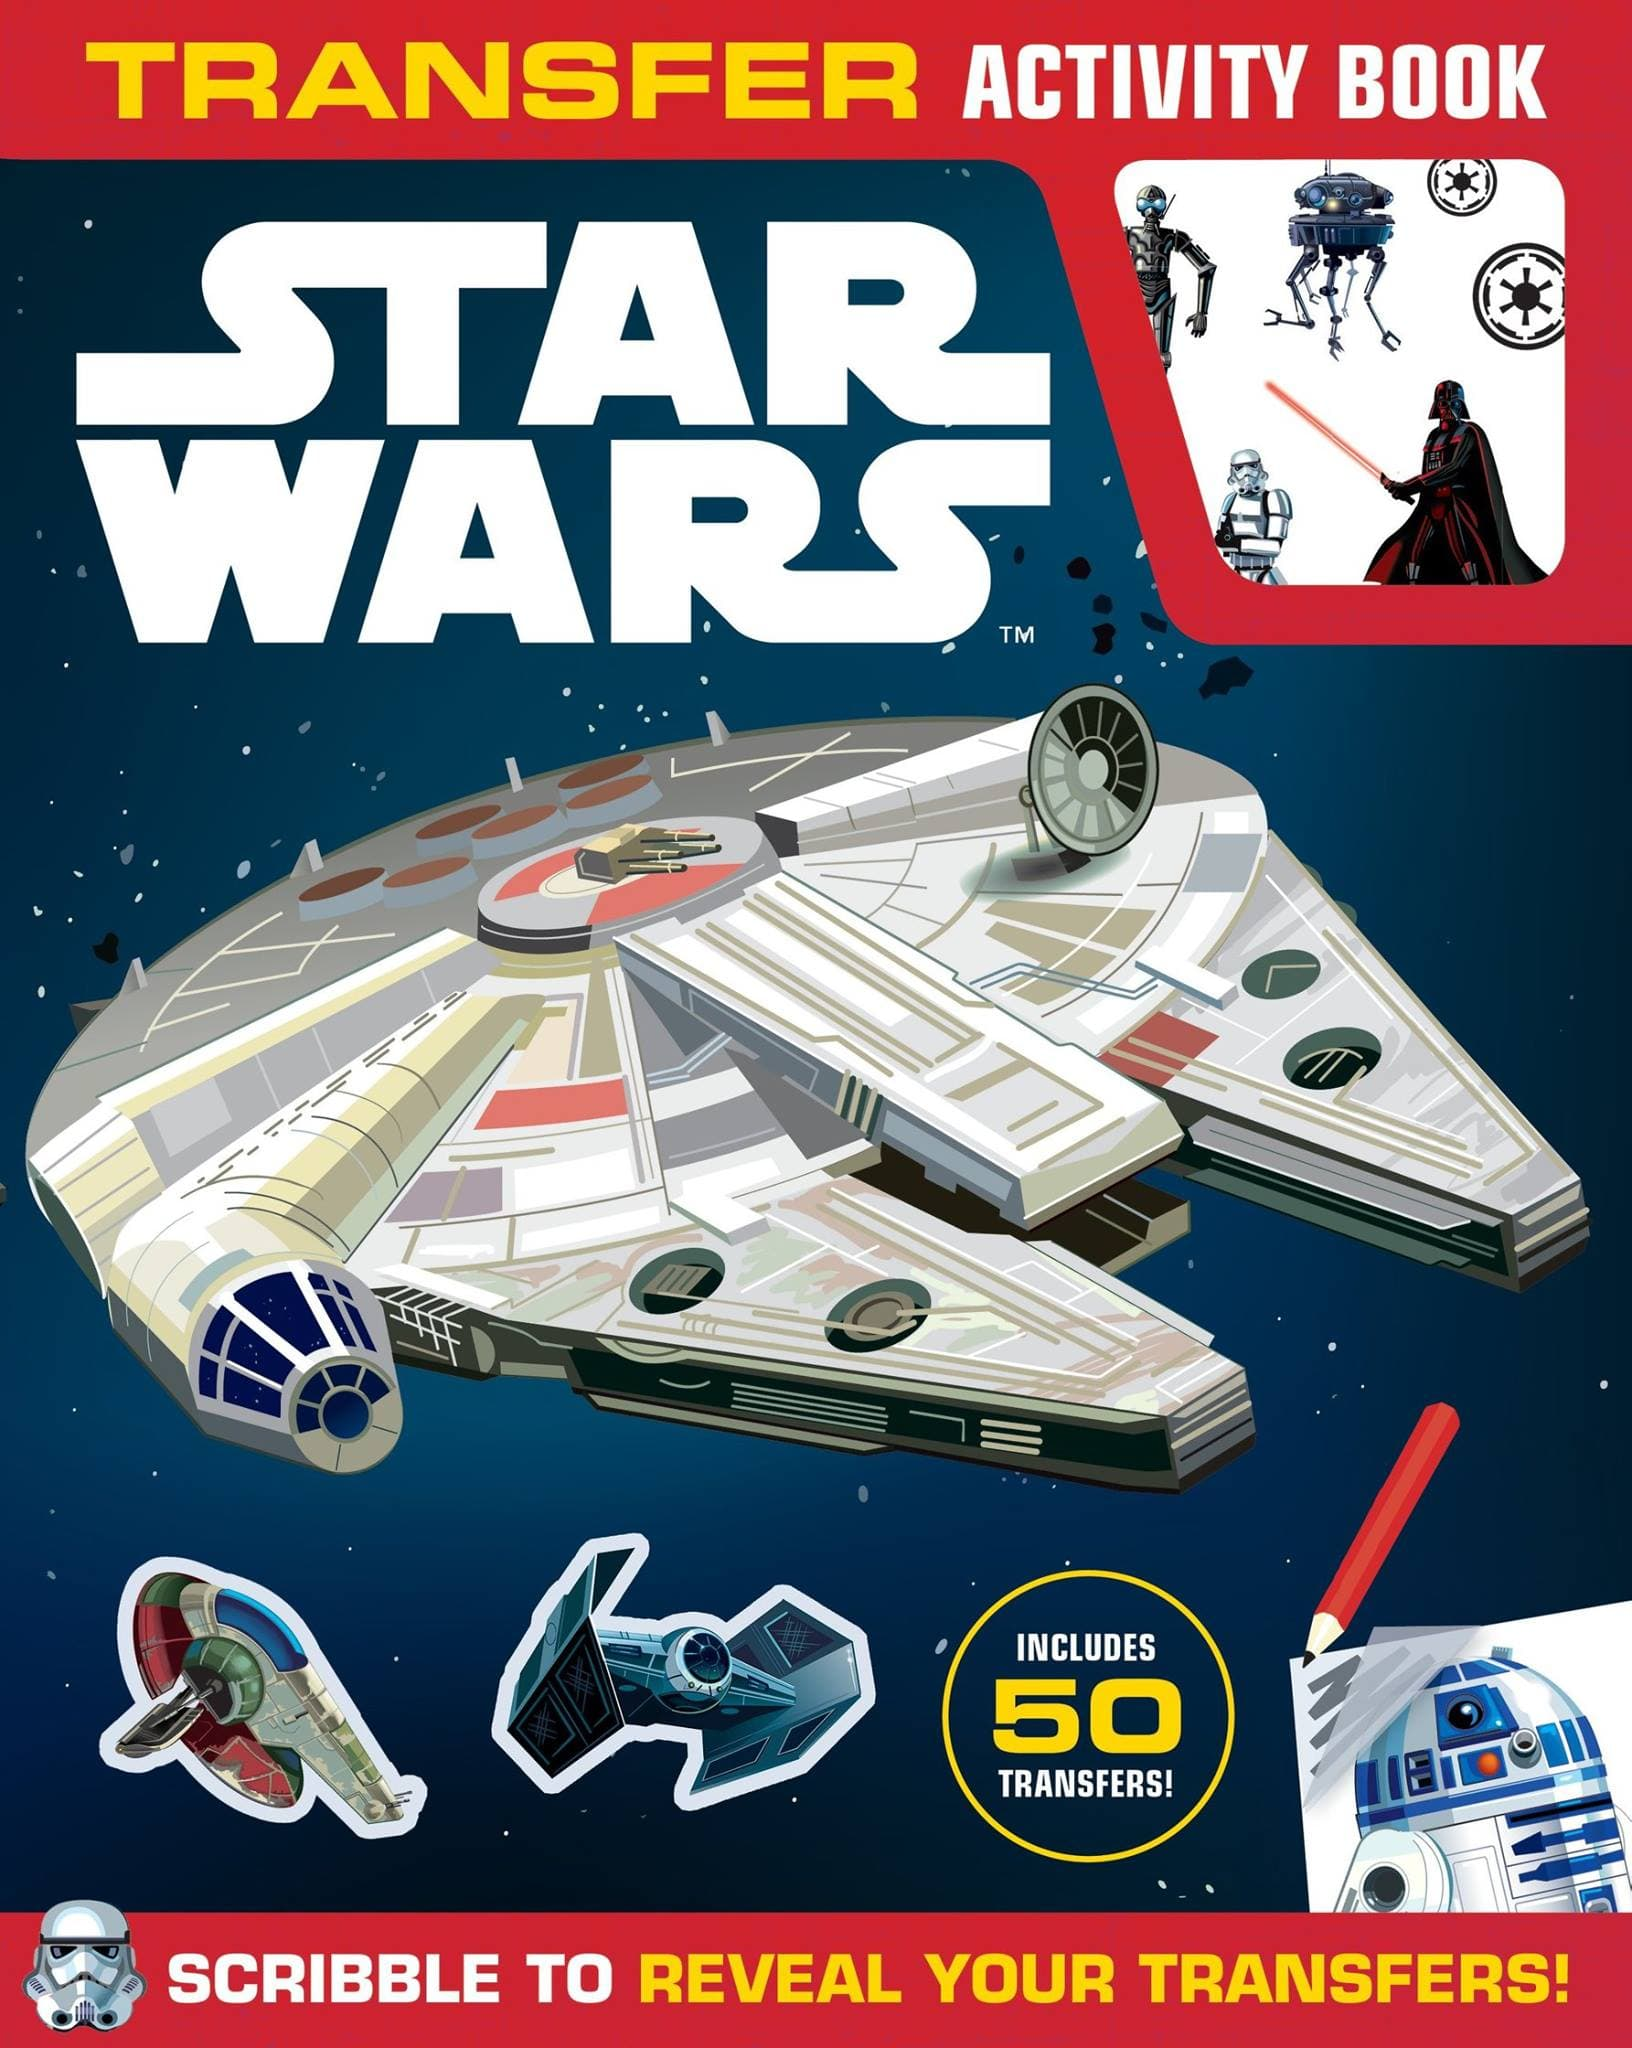 Star Wars Transfer Activity Book (2015)